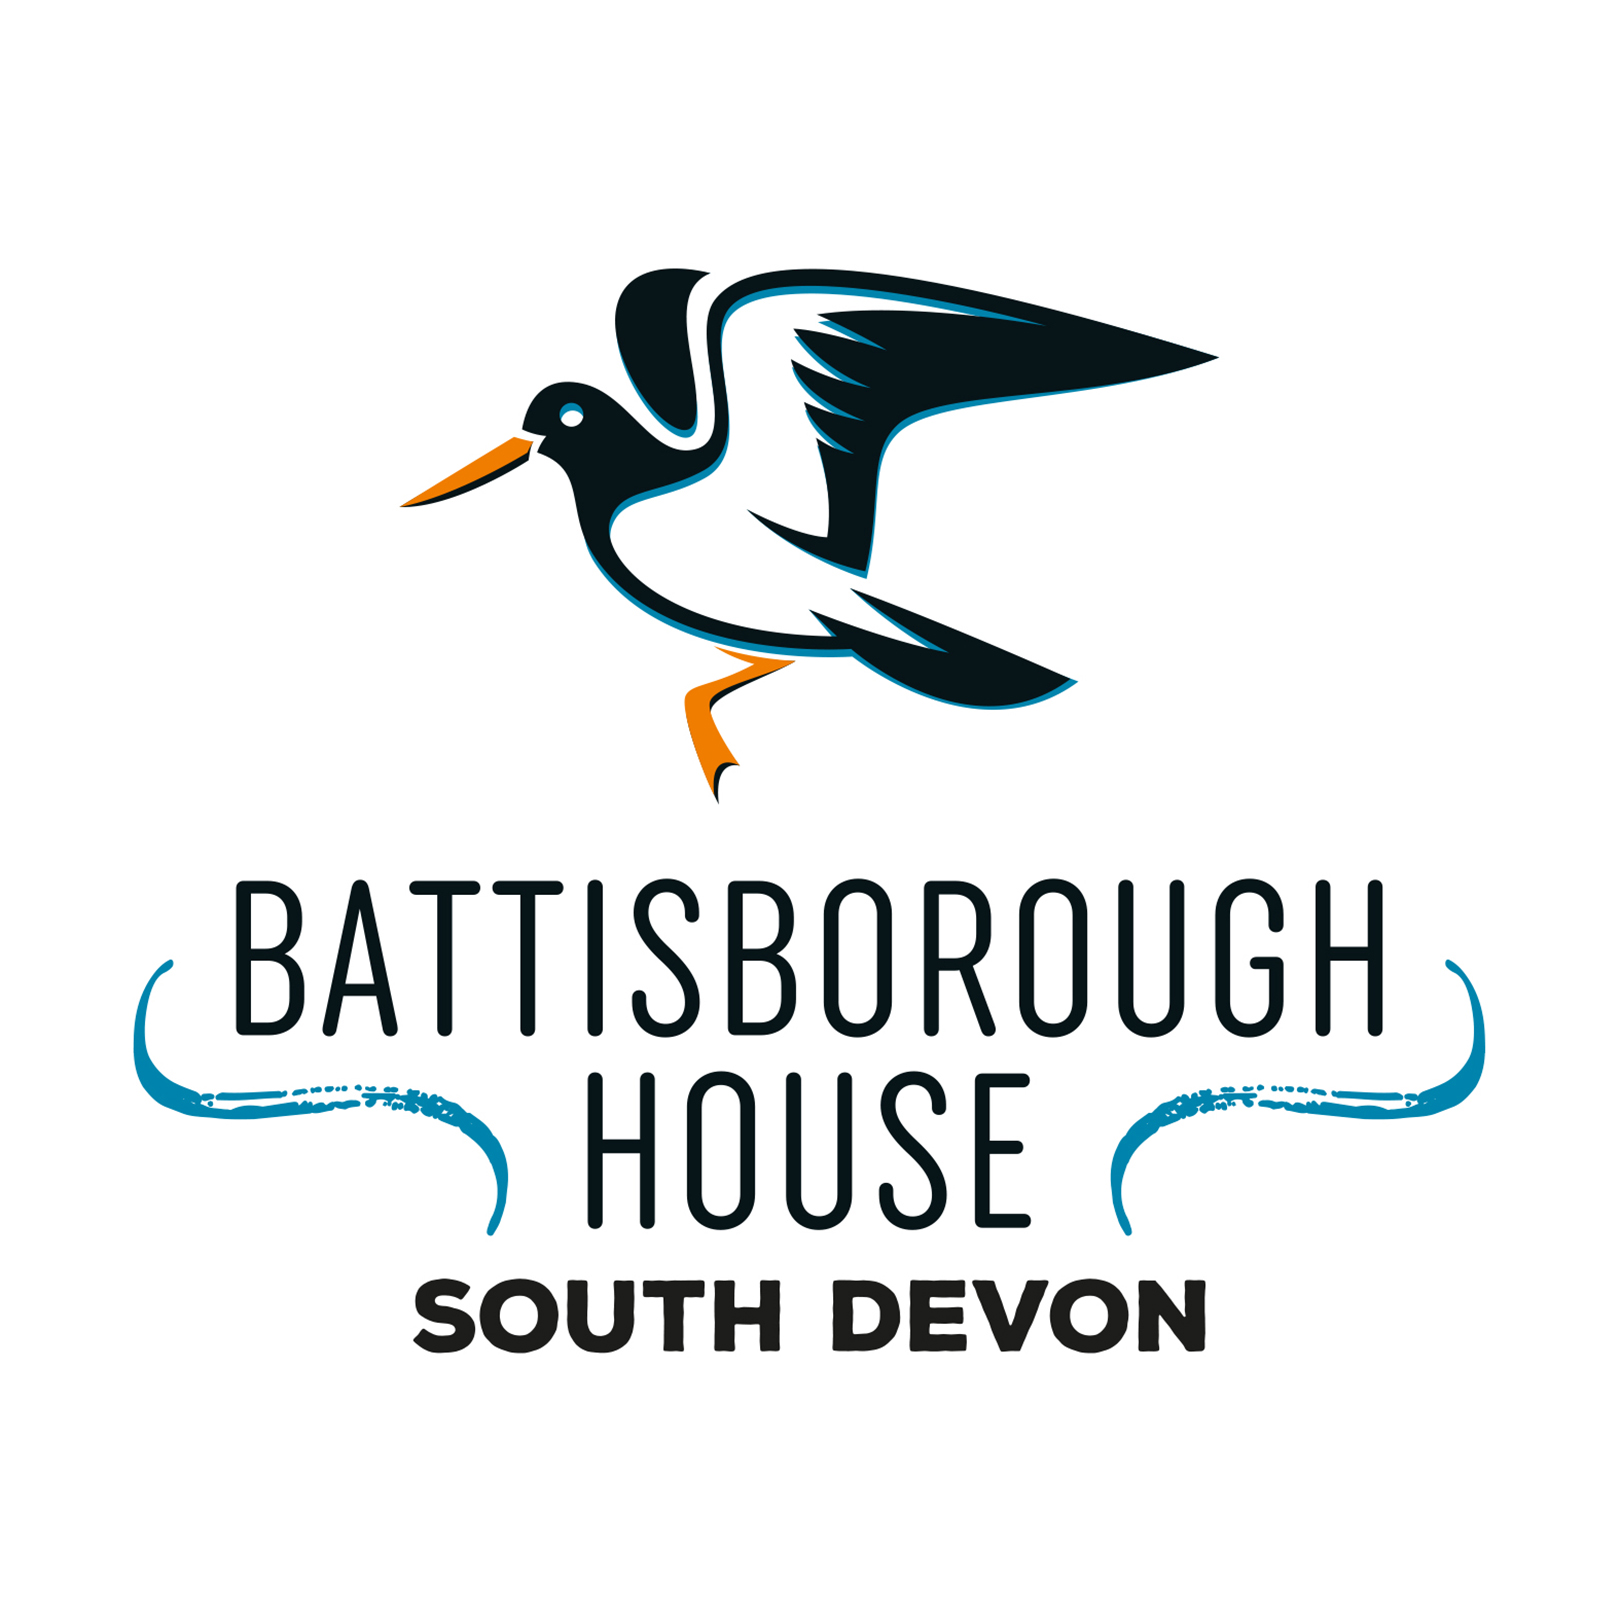 Battisborough House